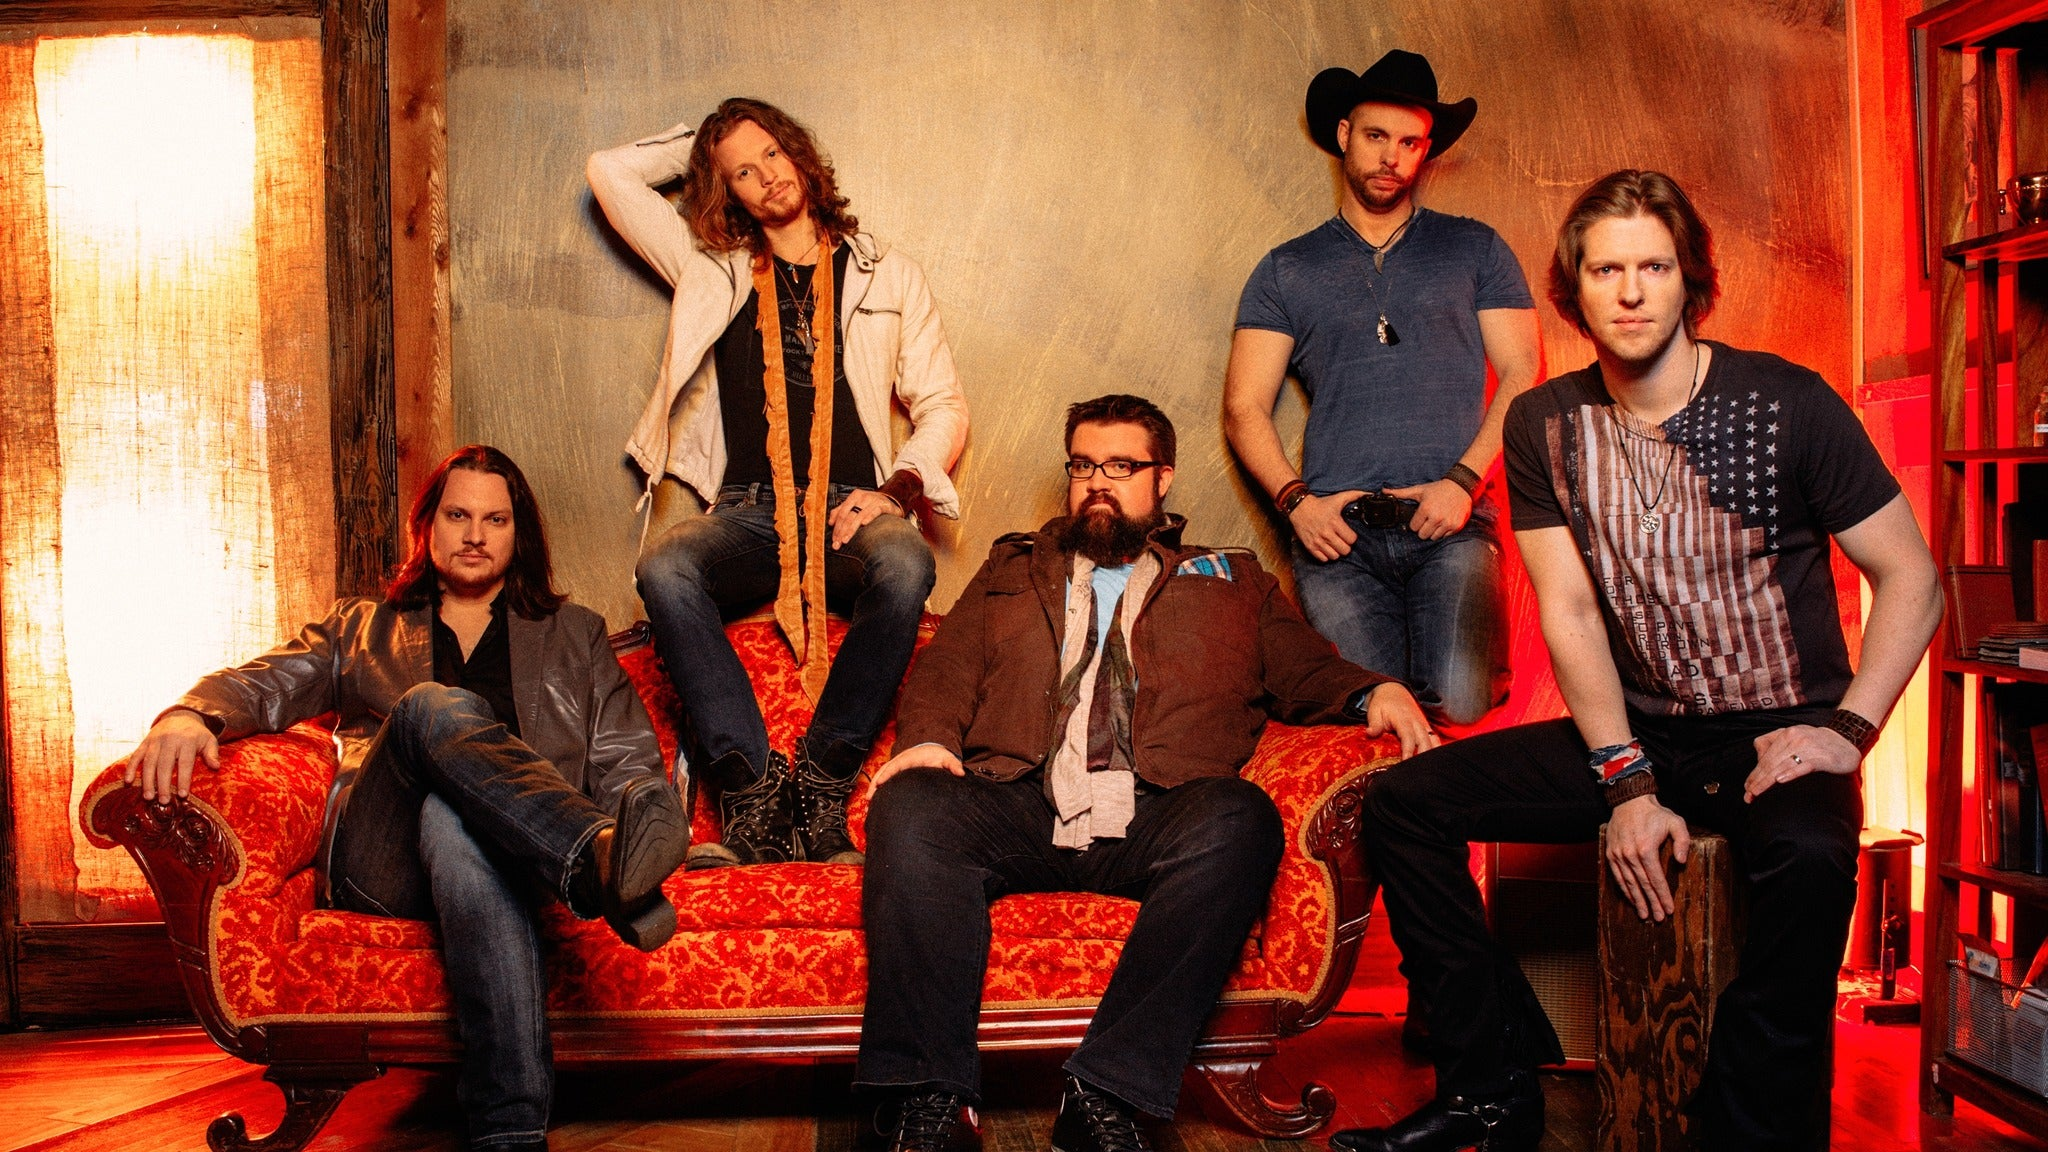 Home Free at The Lerner Theatre